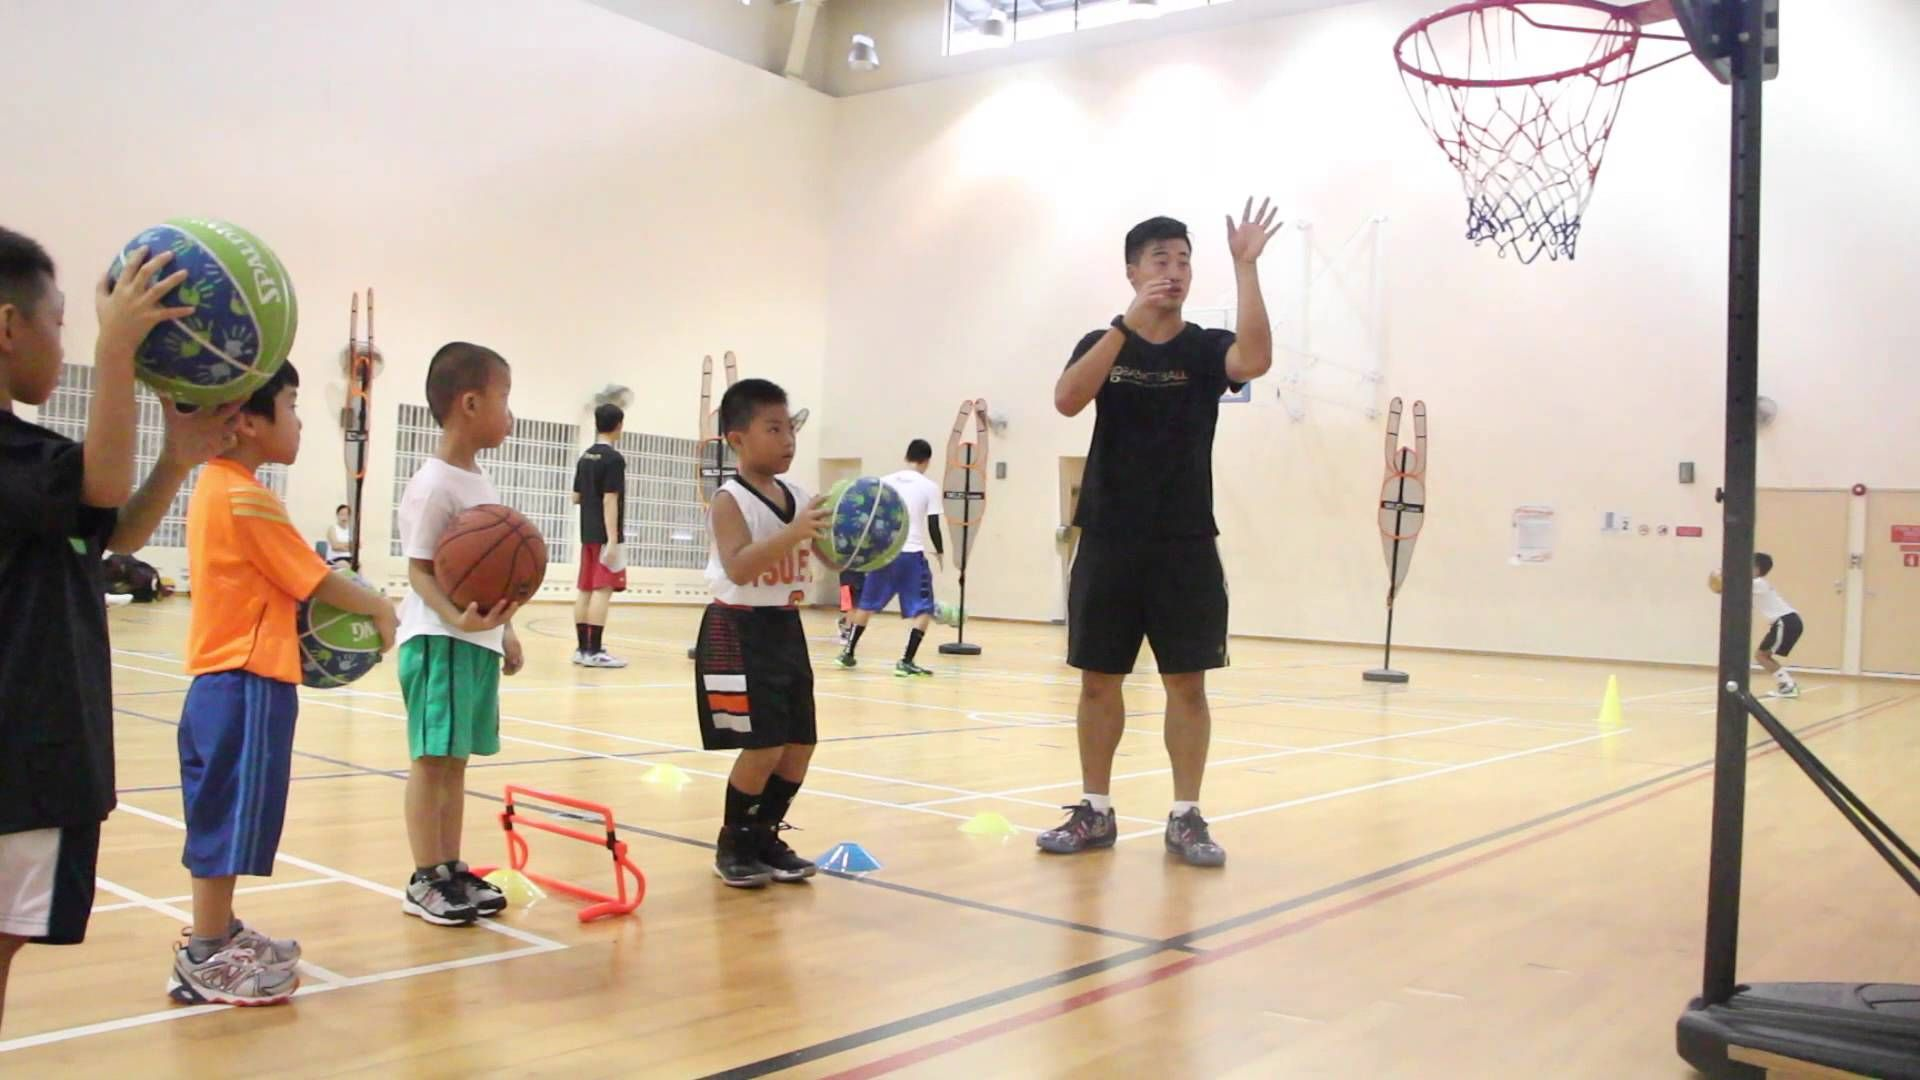 Basketball Training Lesson Singapore Basketball #startyoung